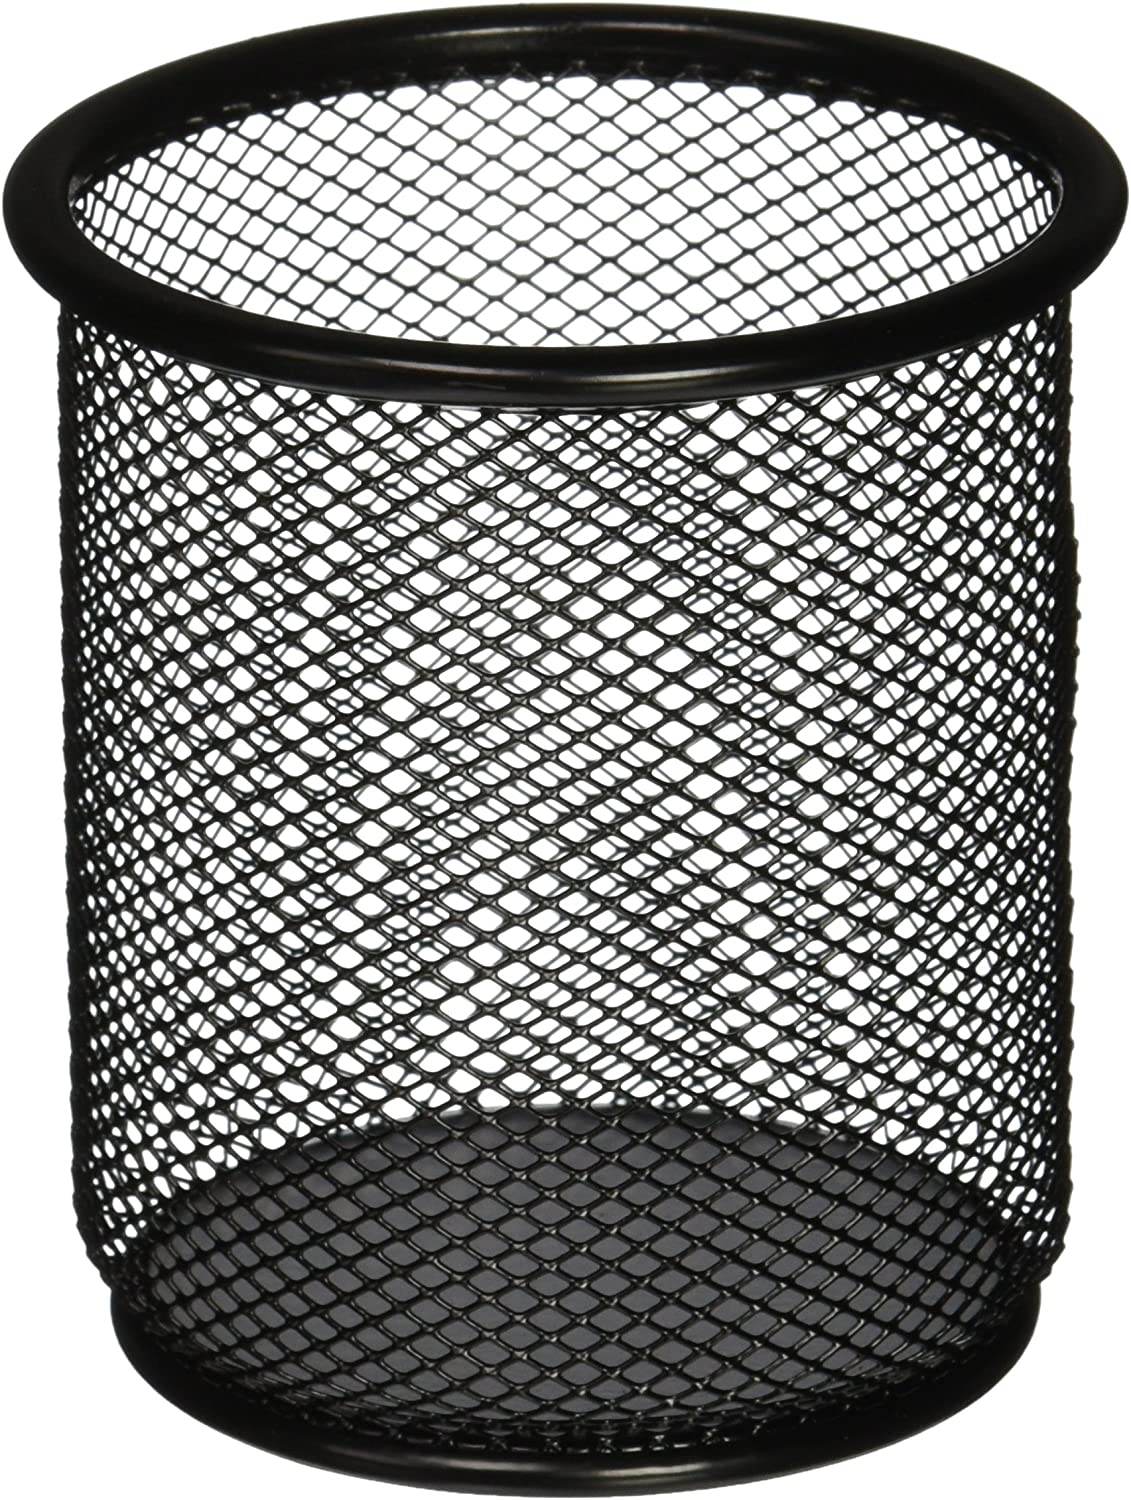 Lorell LLR84149 Mesh Wire Pencil Cup Holder, Black